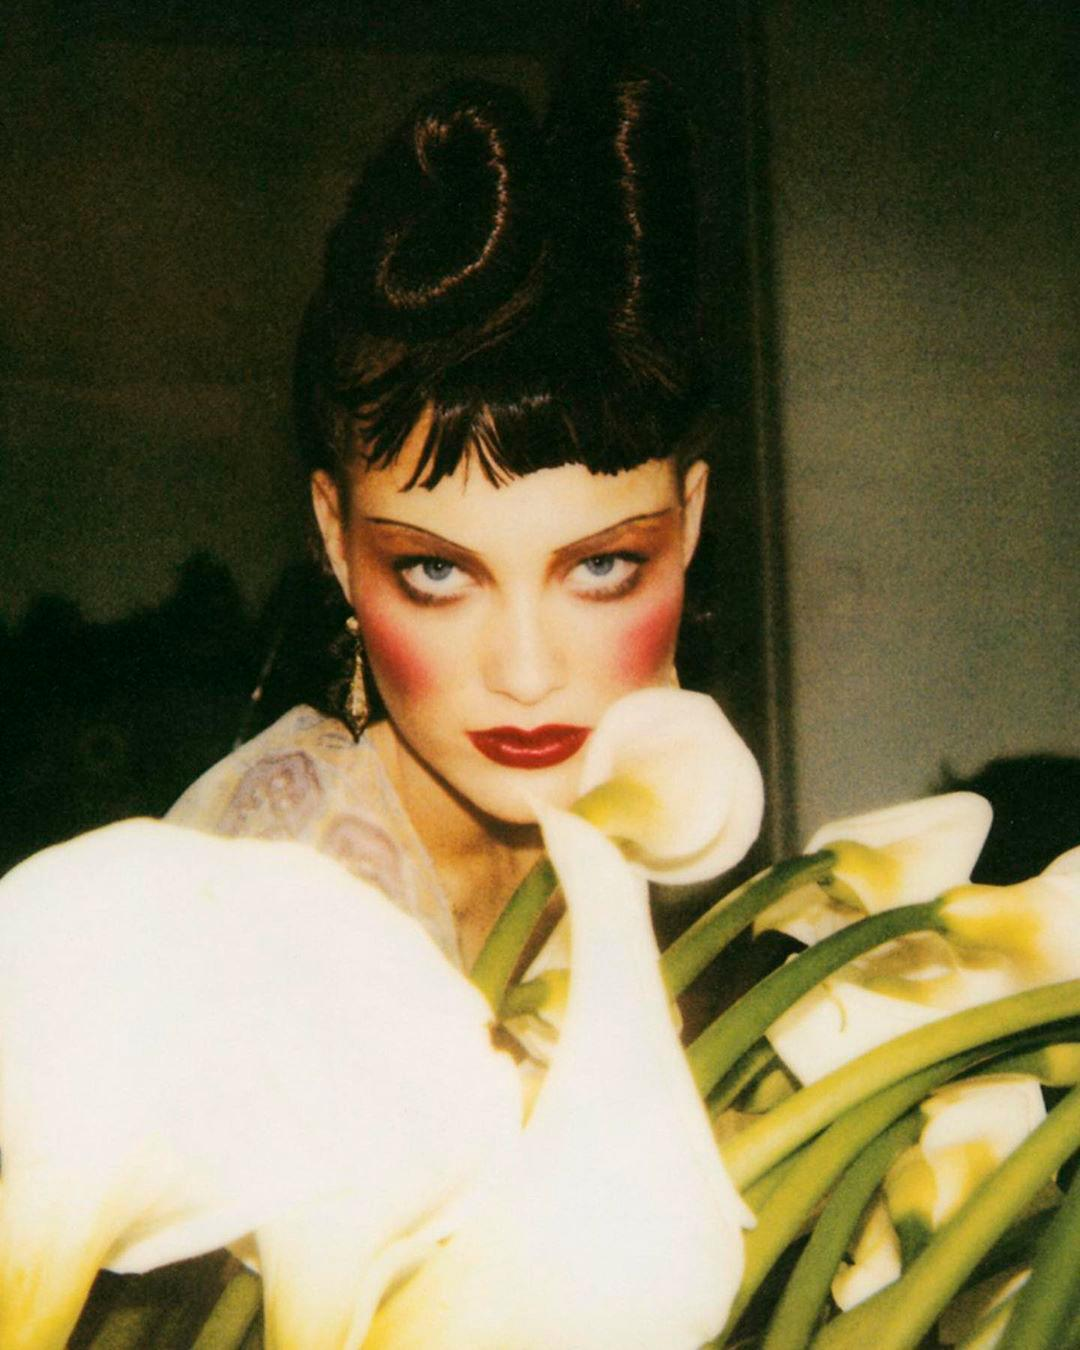 image from Stéphane Marais' Beauty Flash book showing model in heavy blush and eyeshadow looking into camera